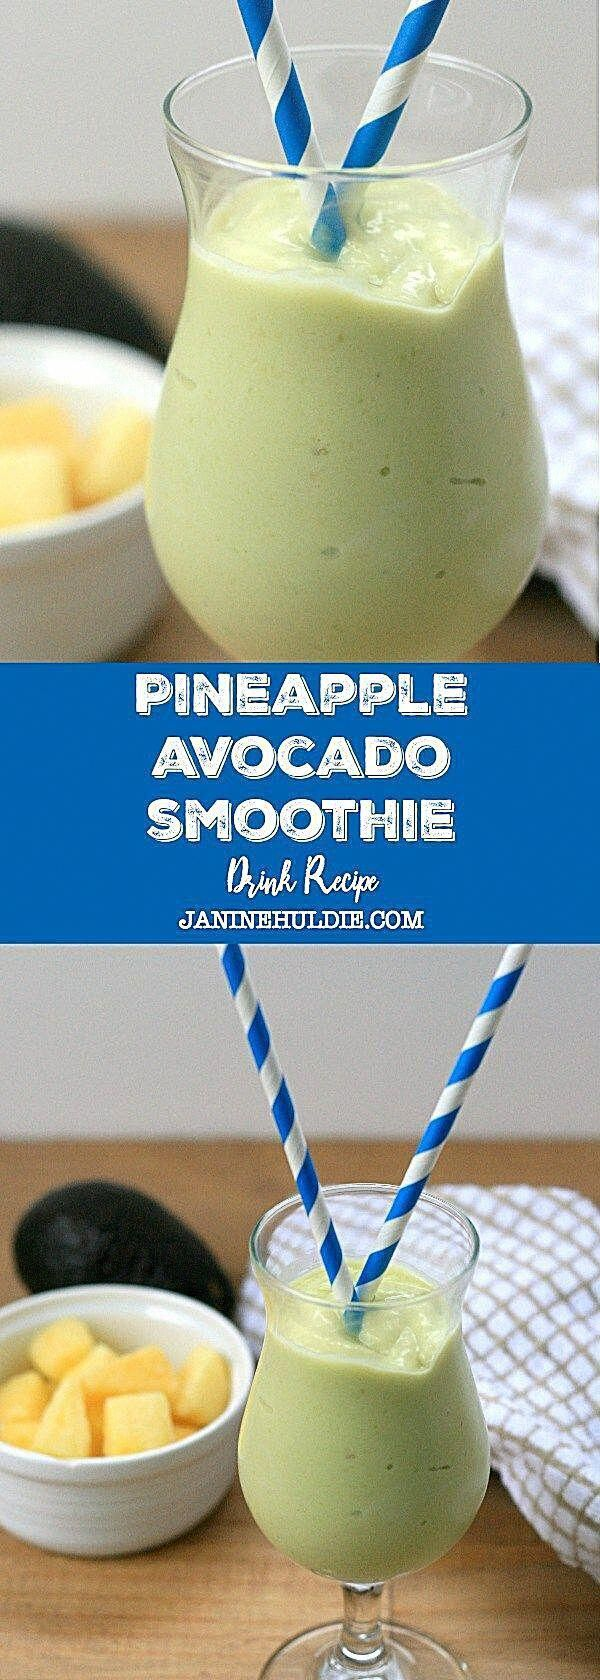 Are you wanting a recipe for a green, healthier smoothie that is still sweet to the taste? Then, check out my recipe for a Pineapple Avocado Smoothie. Pineapple Avocado Smoothie Drink - Pineapple Avocado Smoothie Recipe #foodday #healthy #like #foodies #follow #foodmania #vegan #foodista #foodgasm #foodideas #foodinspiration #foodorgasm #bhfyp #foodaddiction #foodgasm #smoothierecipeshealthy